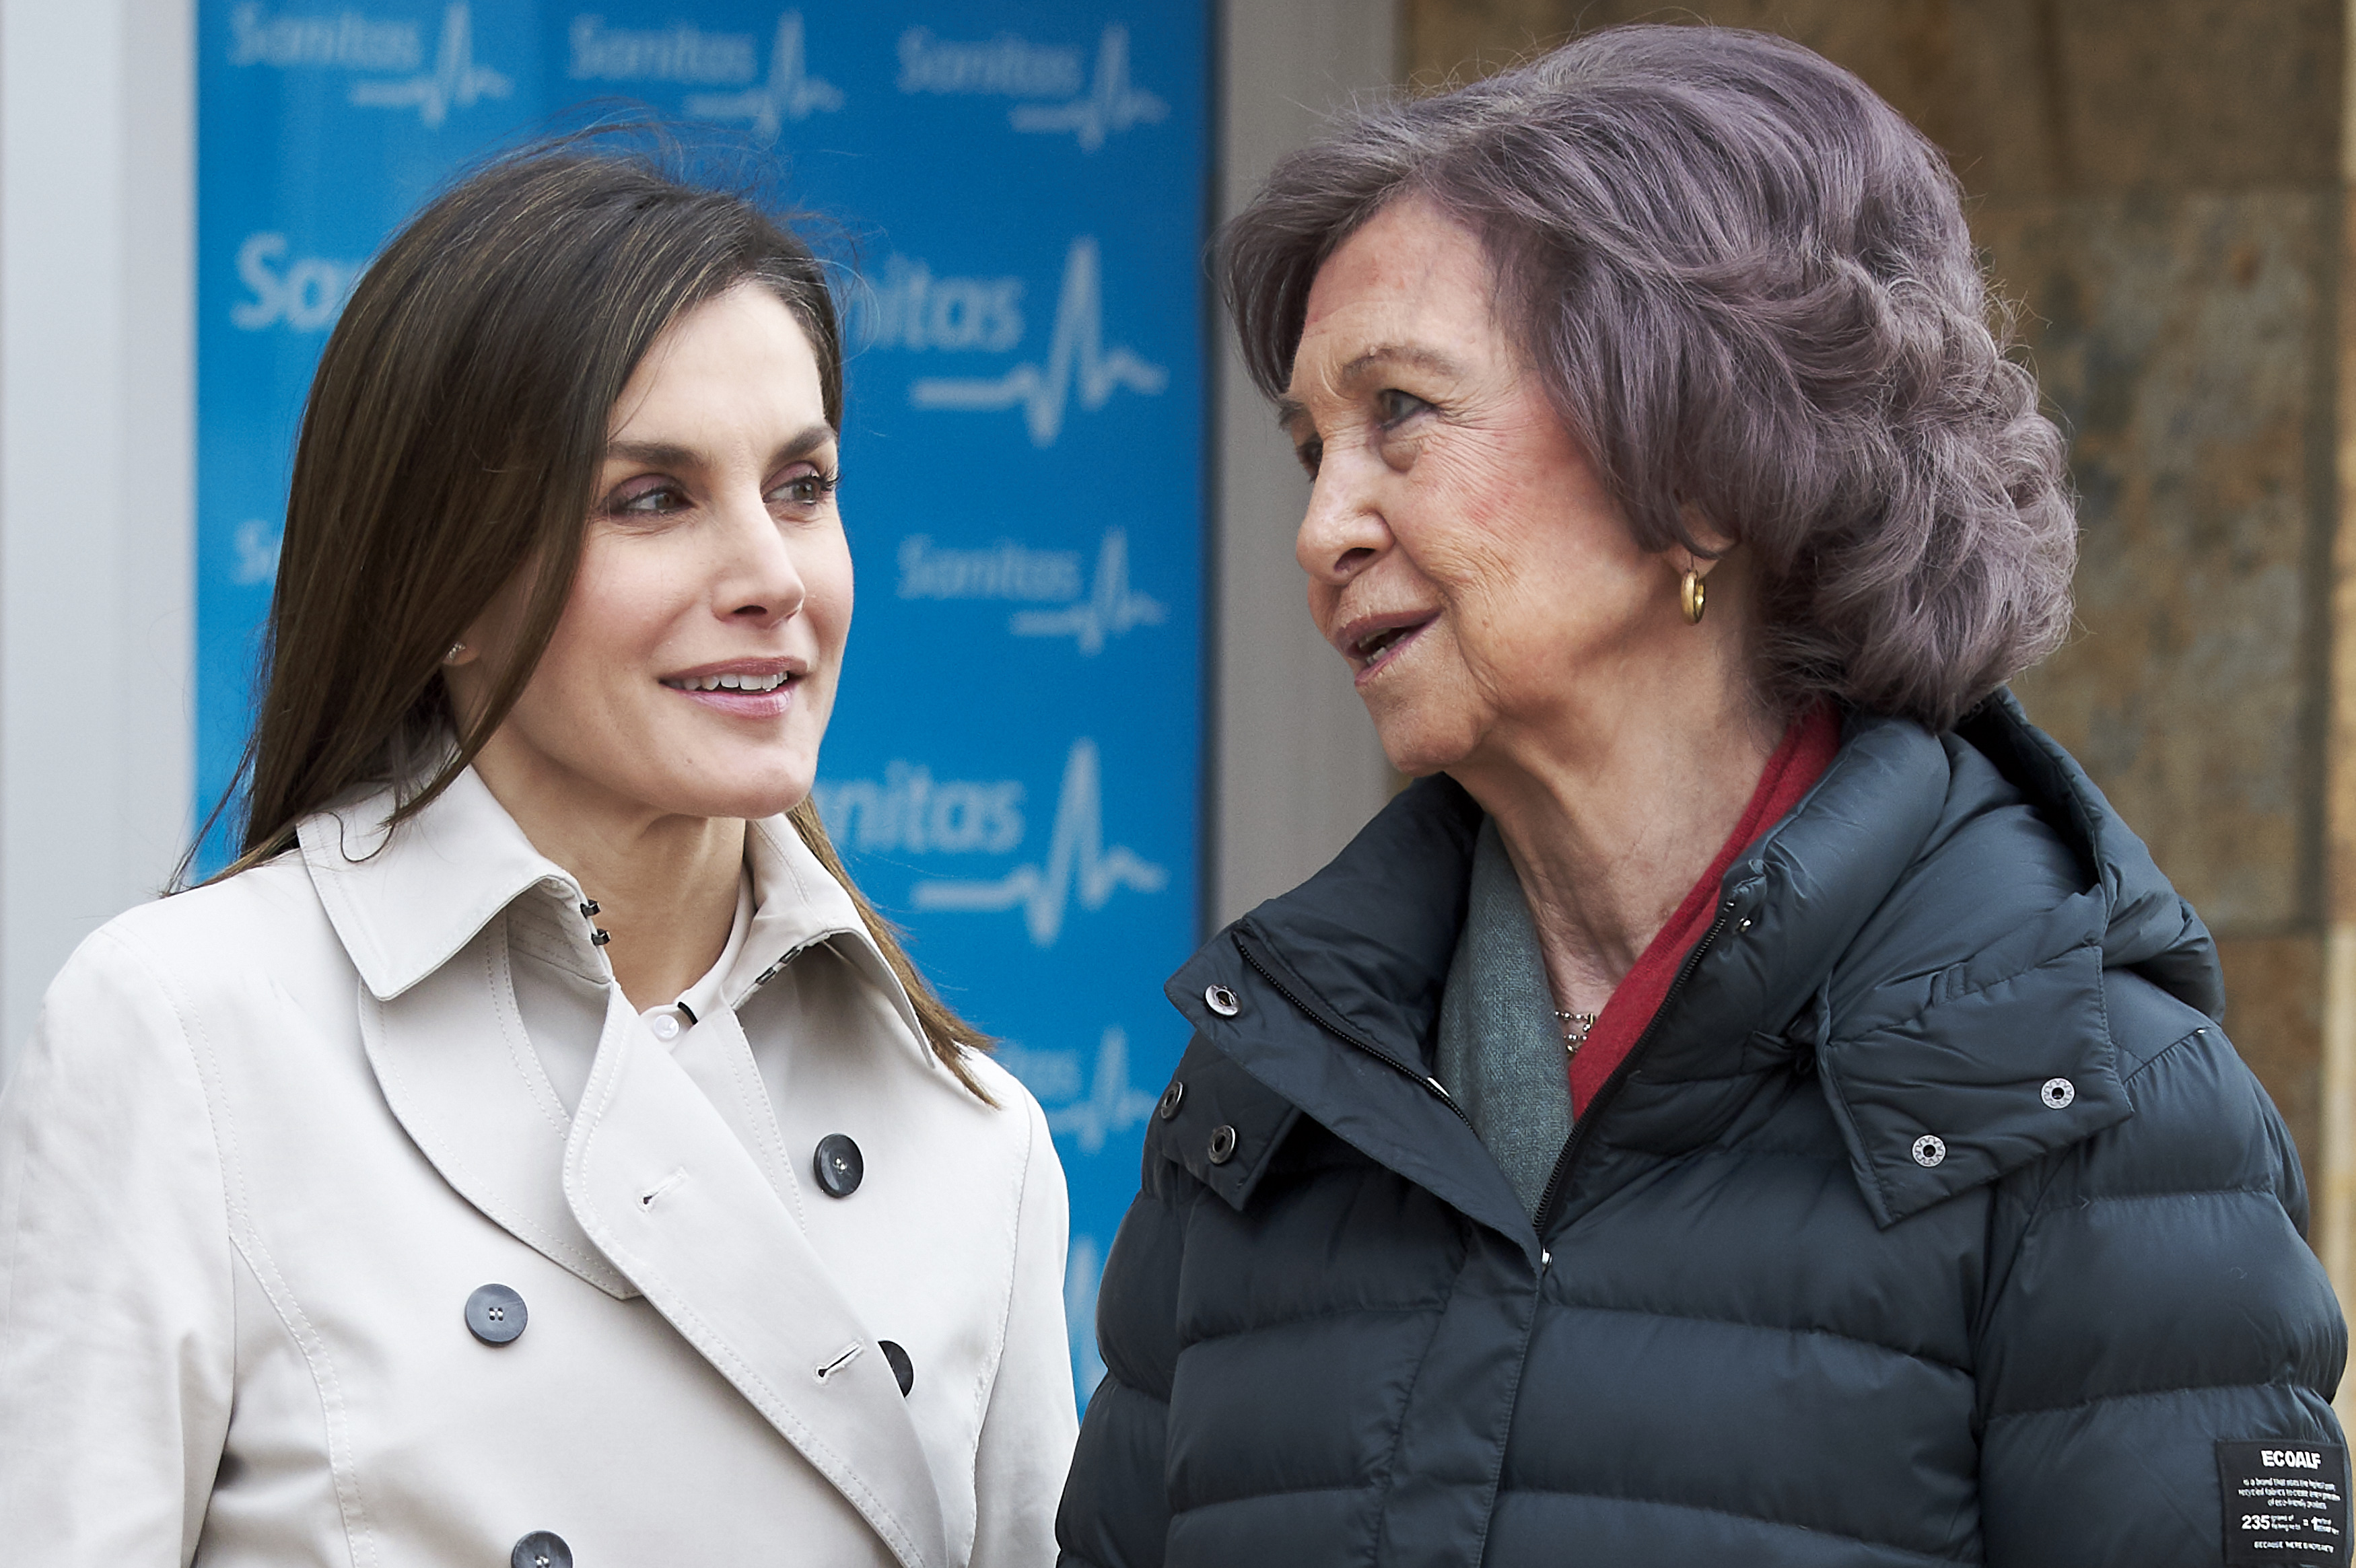 MADRID, SPAIN - APRIL 07: Queen Letizia of Spain (L) and Queen Sofia (R) visit King Juan Carlos at La Moraleja Hospital on April 7, 2018 in Madrid, Spain. King Juan Carlos has been surgery on his right knee to replace an old prosthesis.